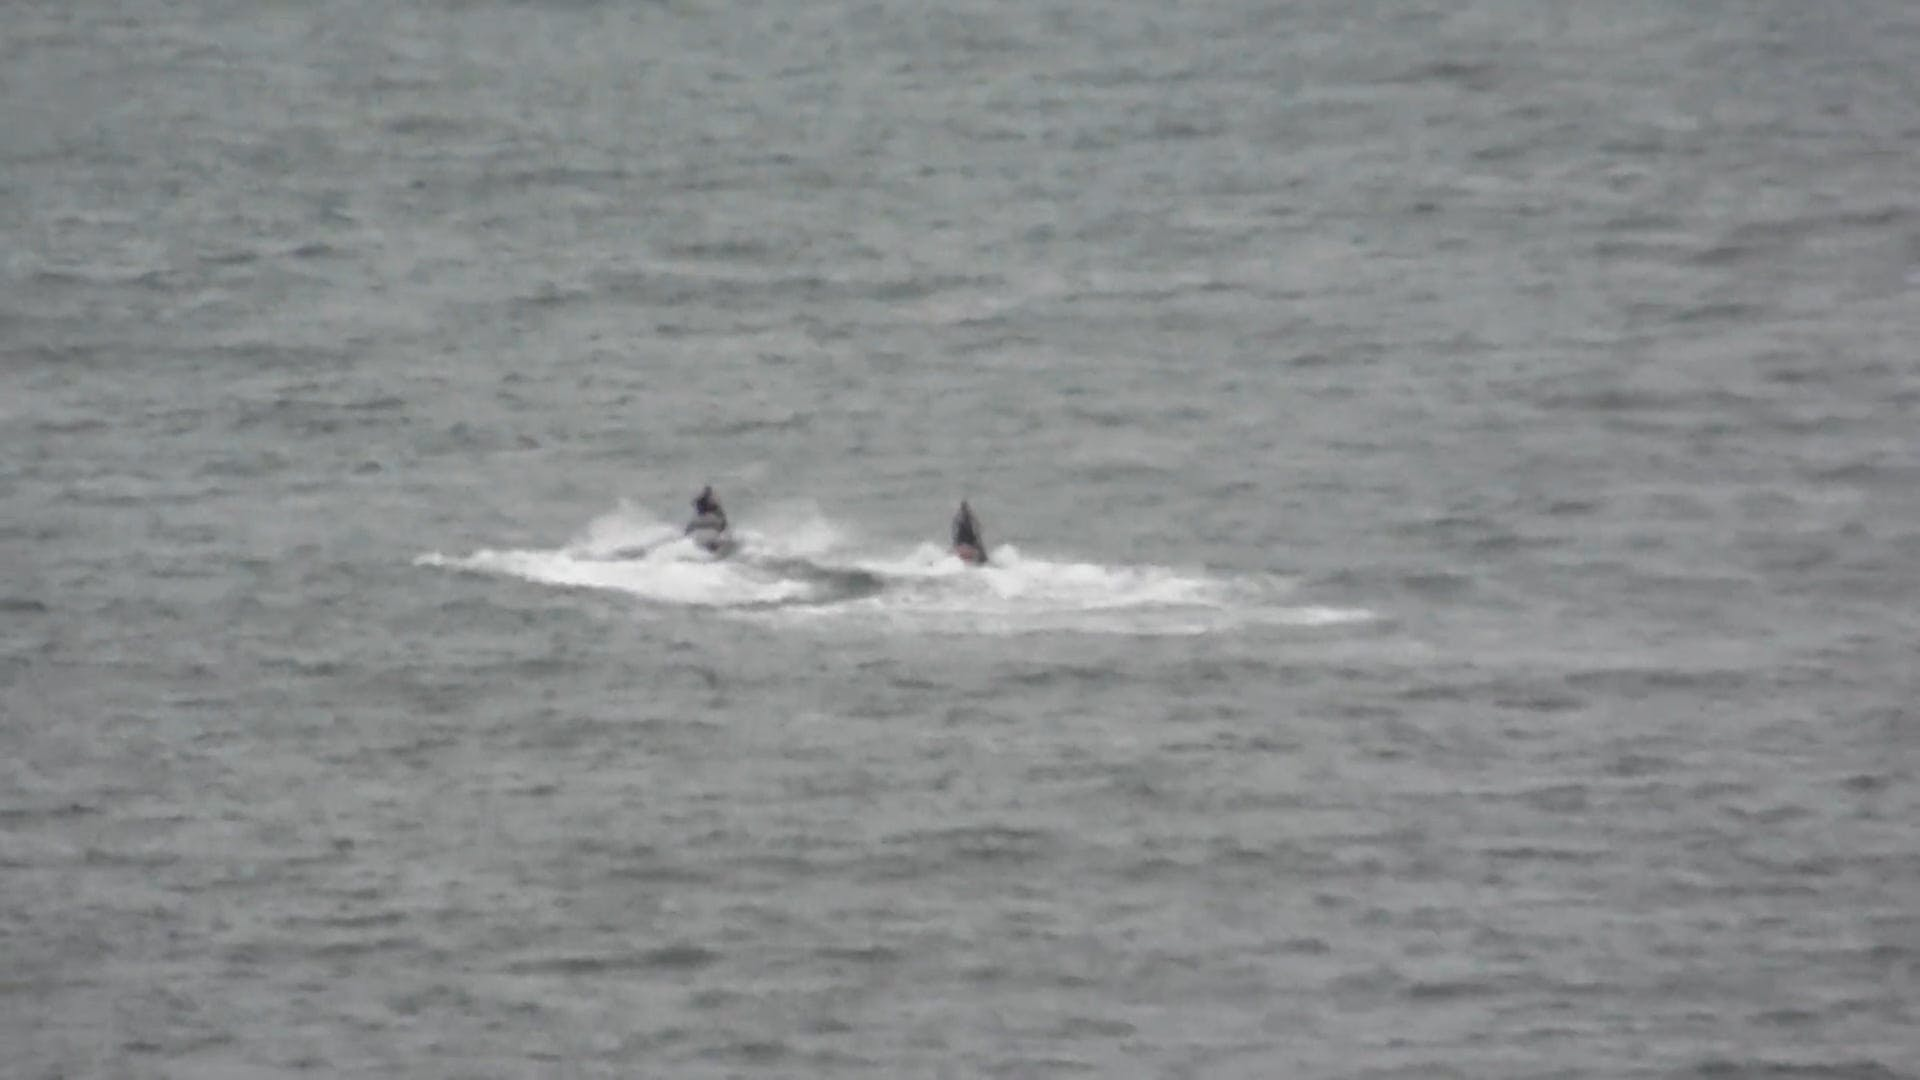 People Riding On Jet Skis and A Motorboat